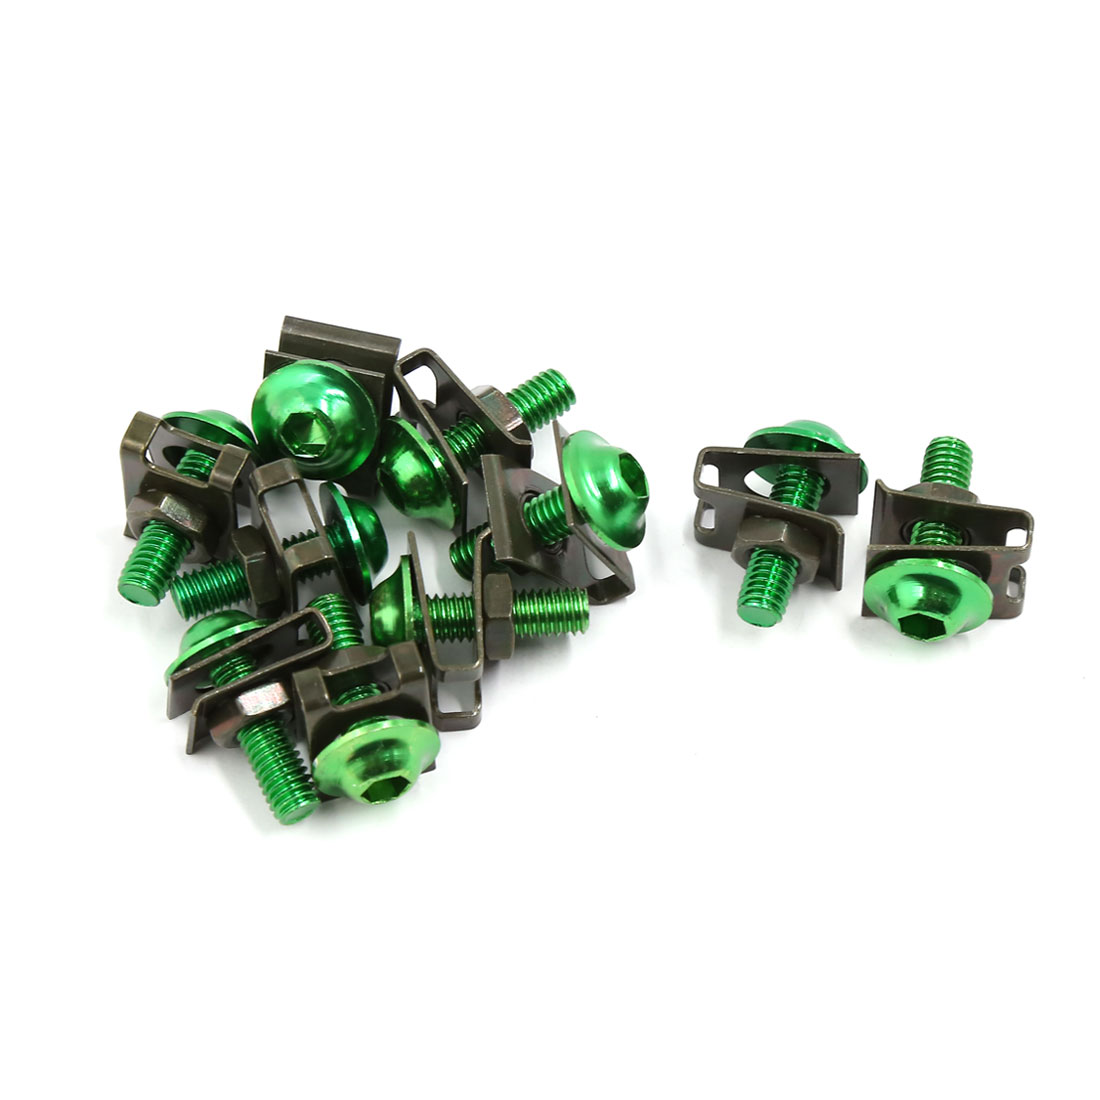 10 Pcs Green 6mm Thread Dia Motorcycle Fairing Bolts Screws Fastener Clips Kit